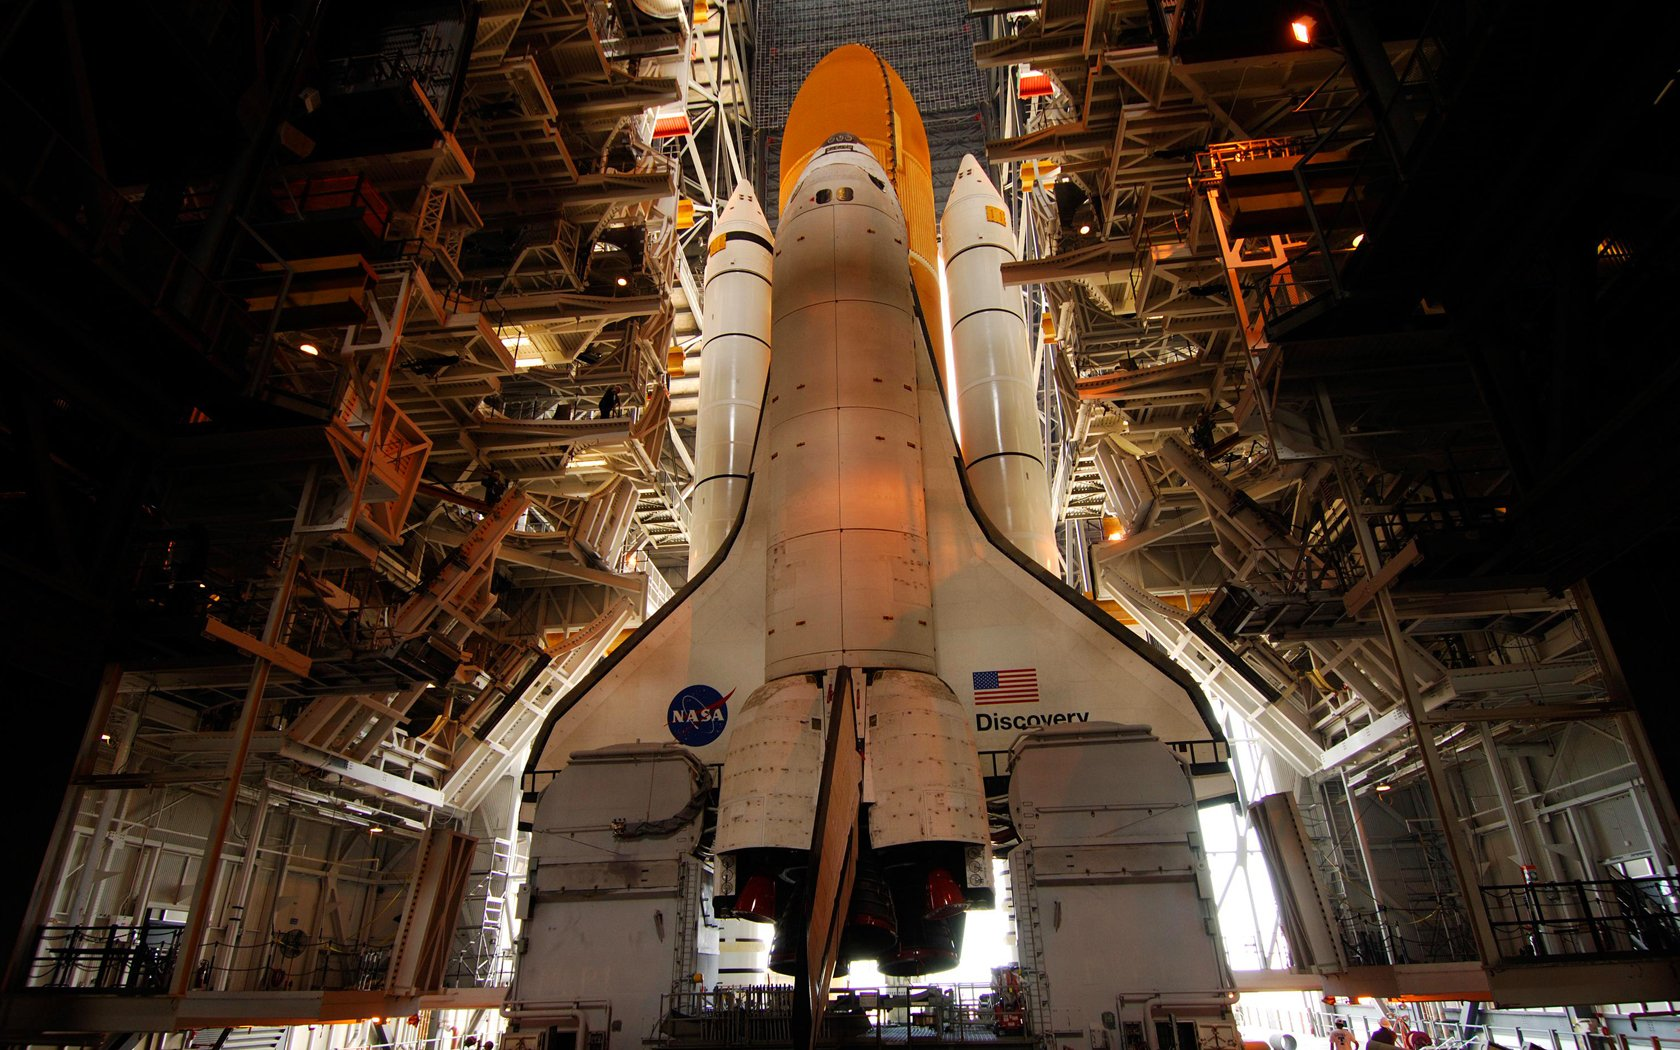 hd space shuttle in space - photo #32